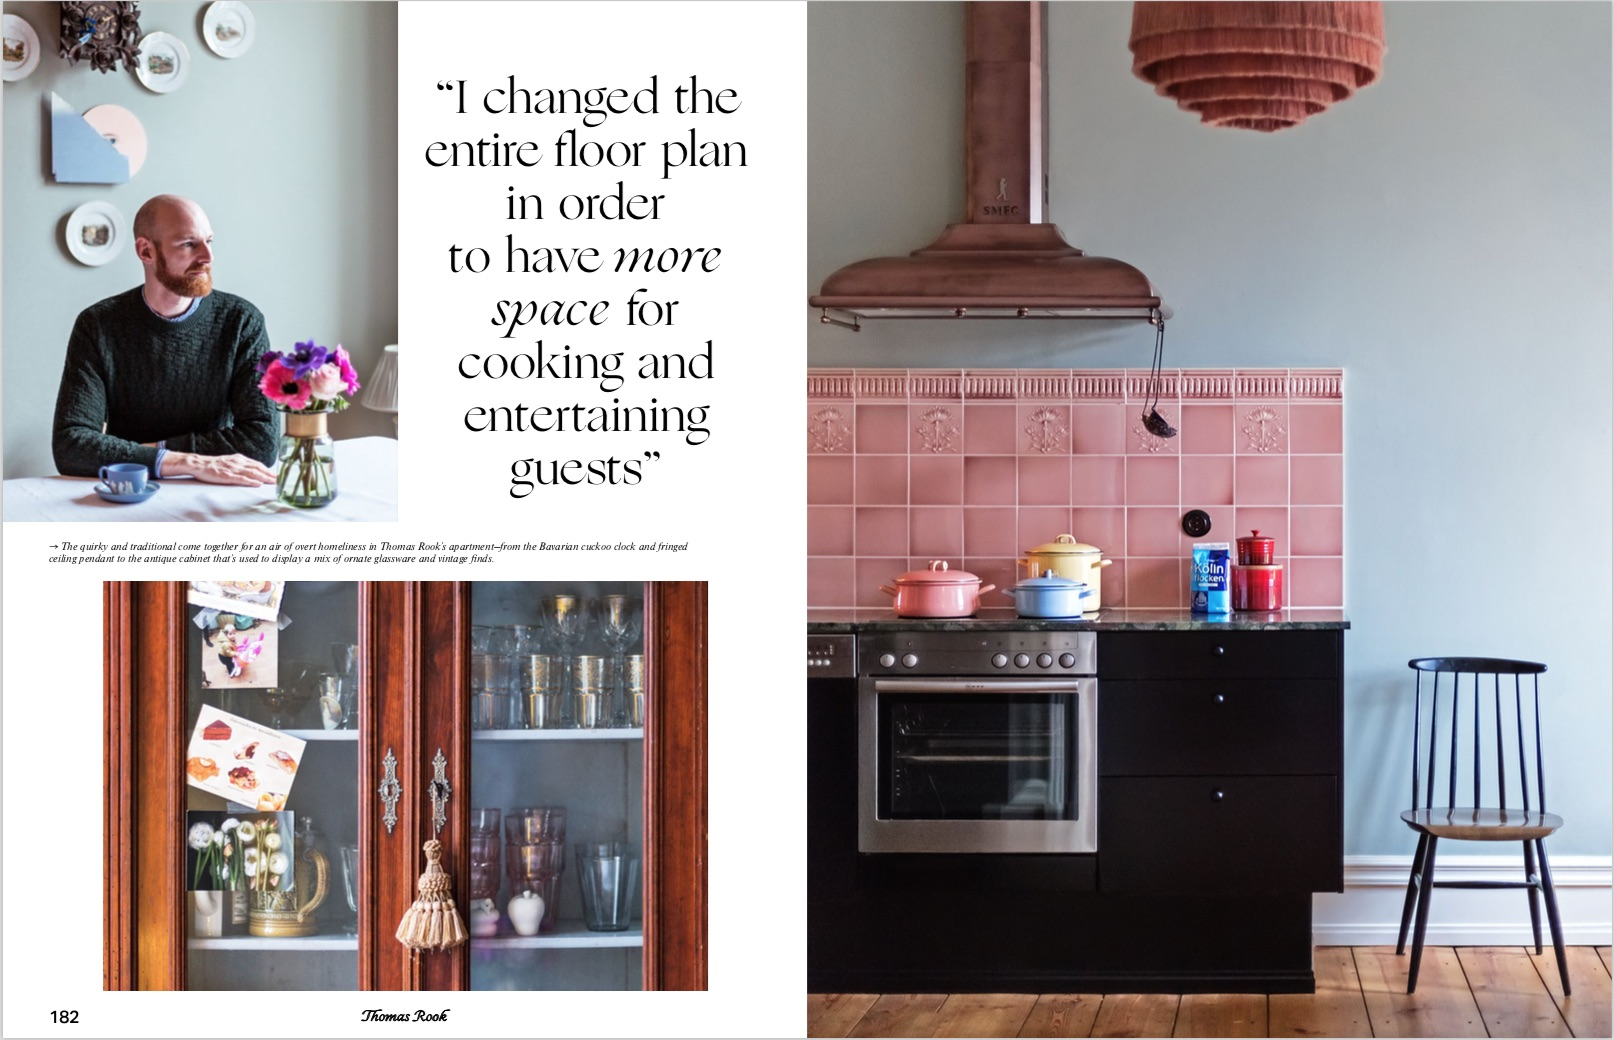 From Kitchen Living copyright Gestalten 2019